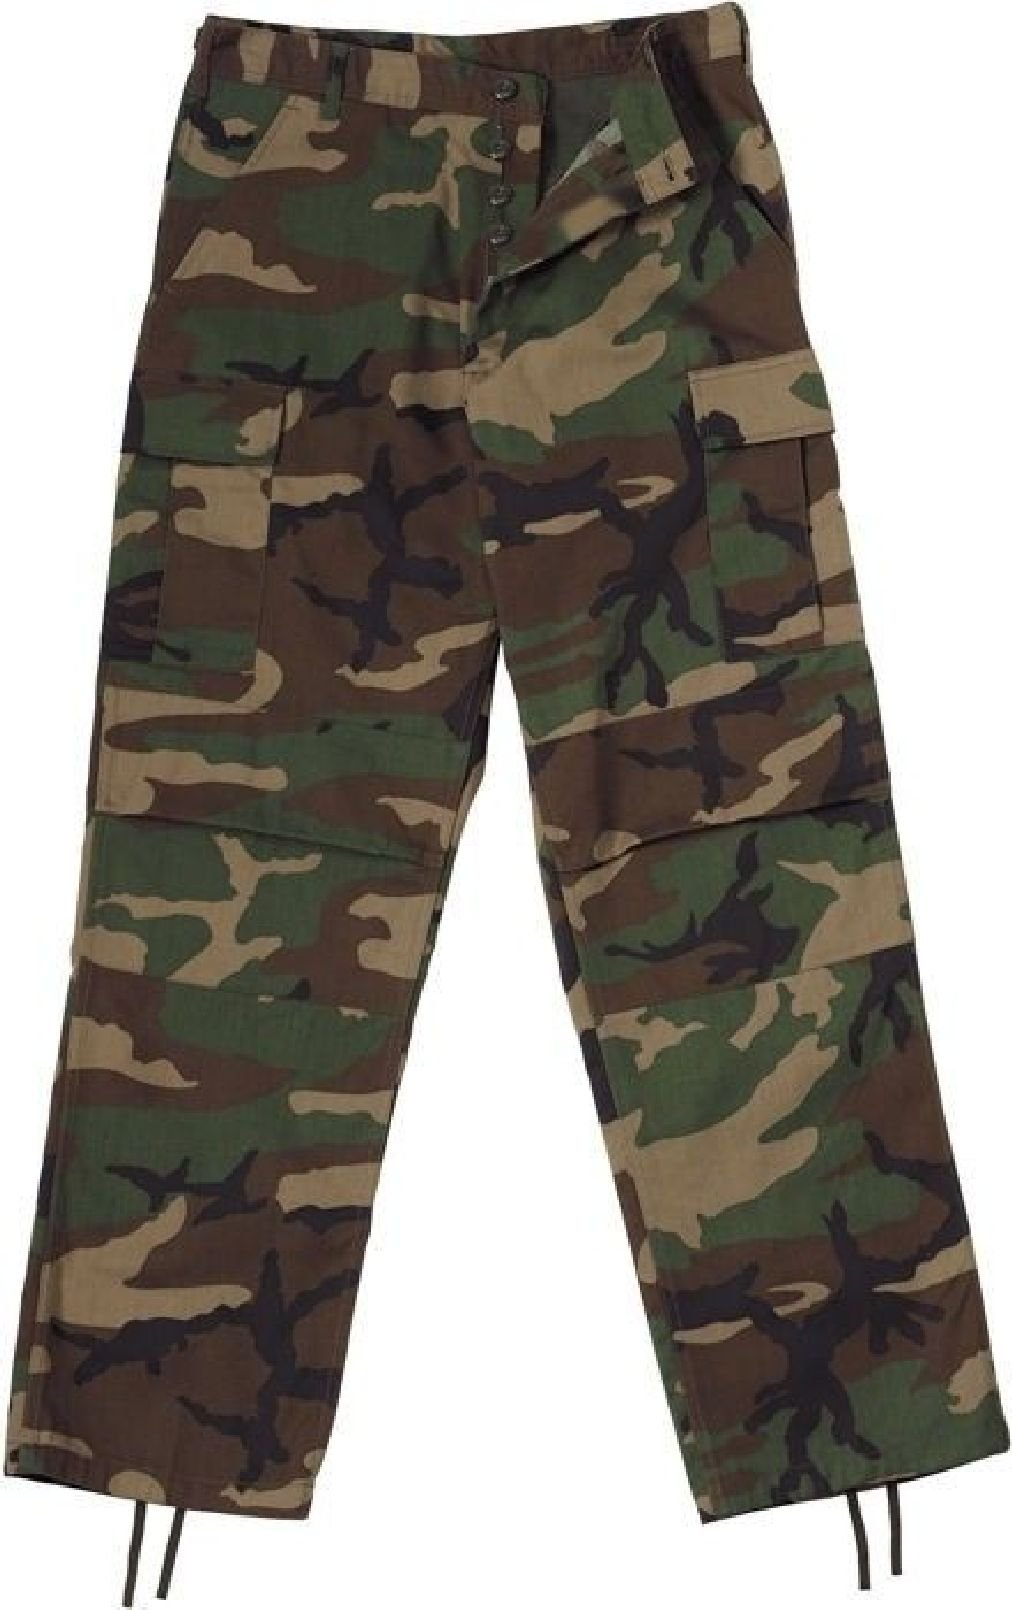 Mens Woodland Camouflage Military BDU Cargo Bottoms Fatigue Trouser Camo Pants by AMYE